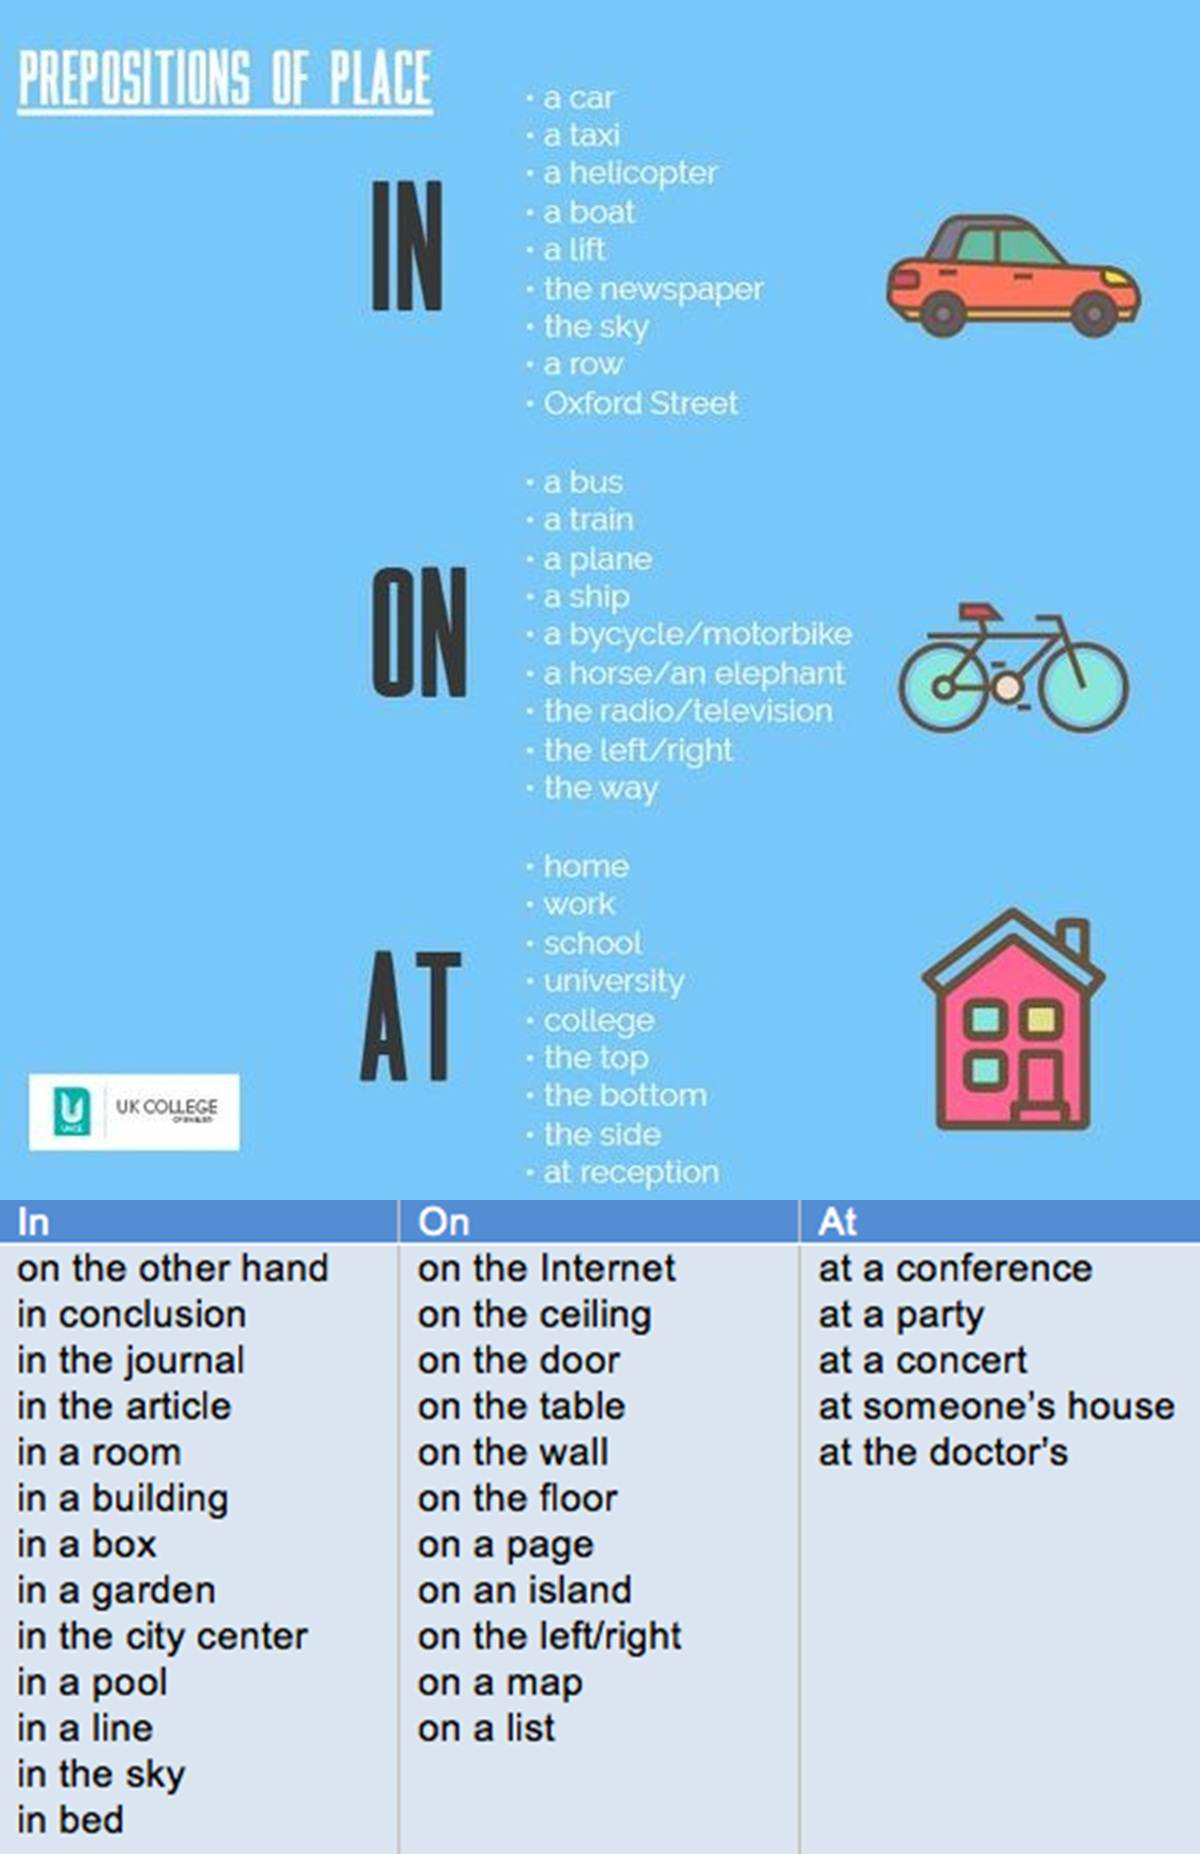 Home english prepositions fluent land prepositions in english at on in ccuart Image collections